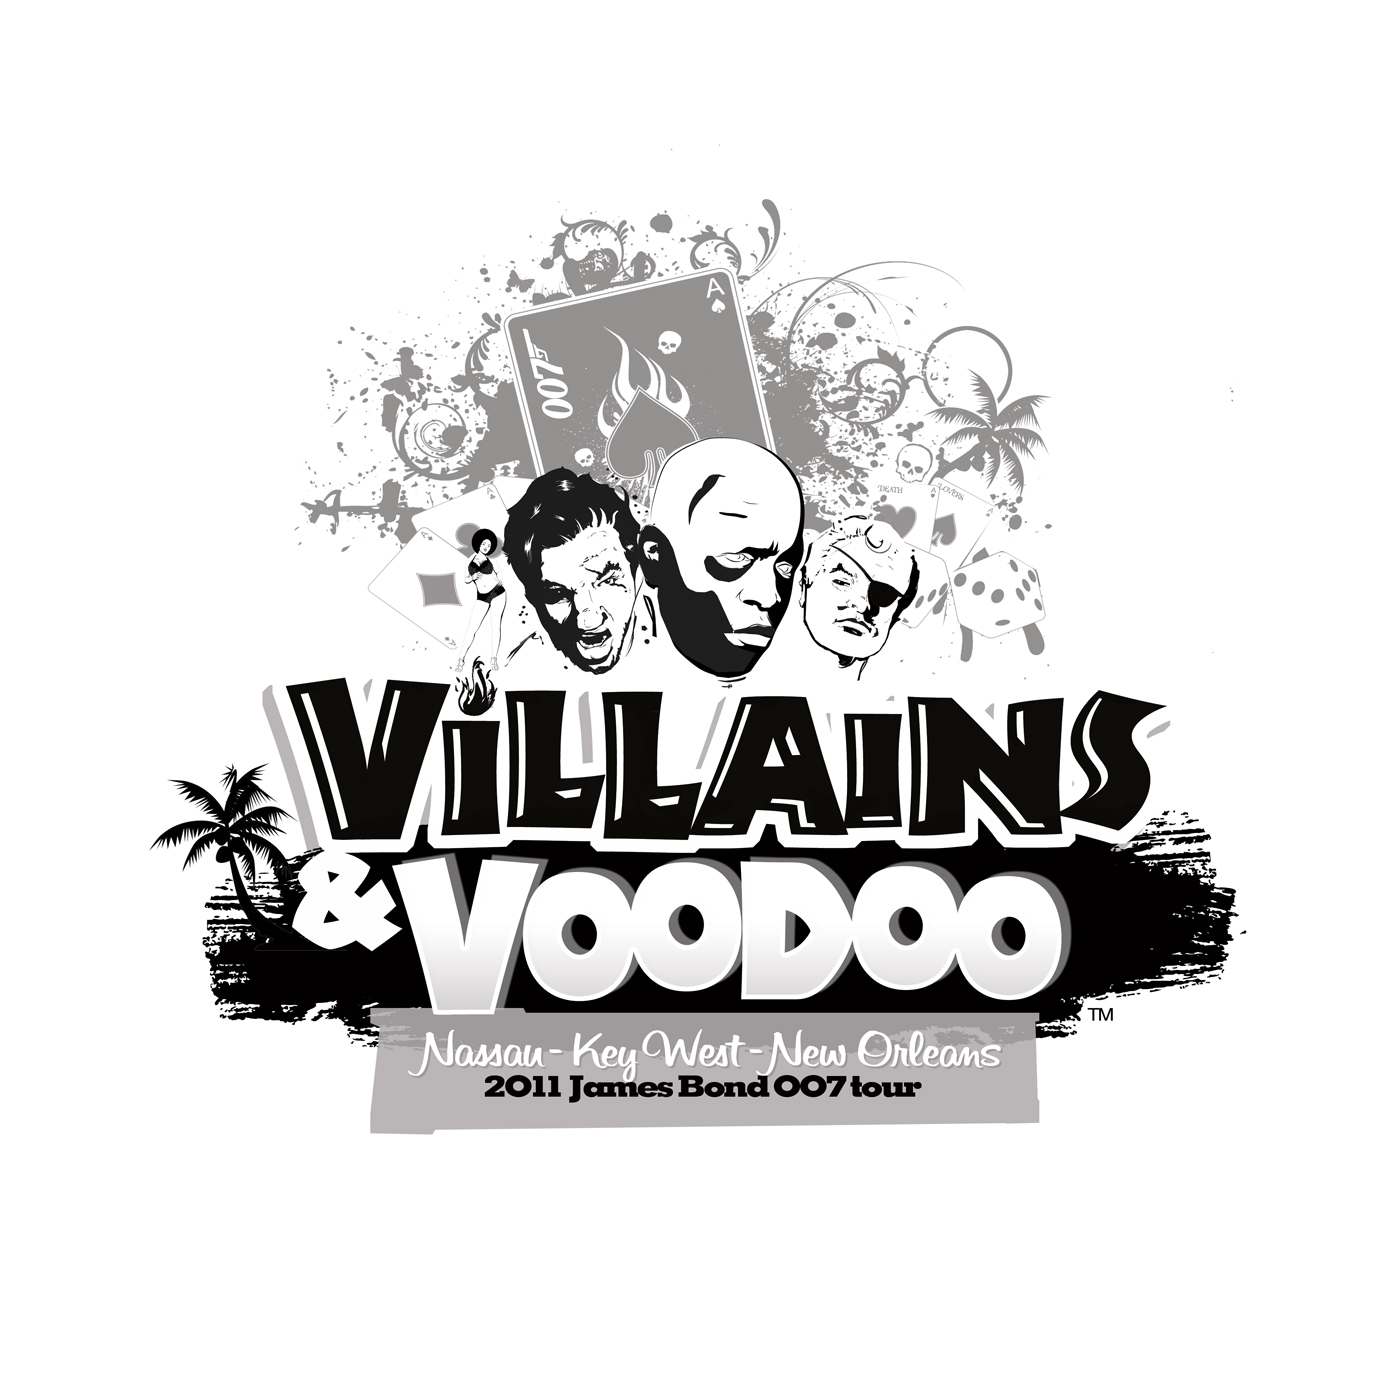 villains and voodo bw.jpg